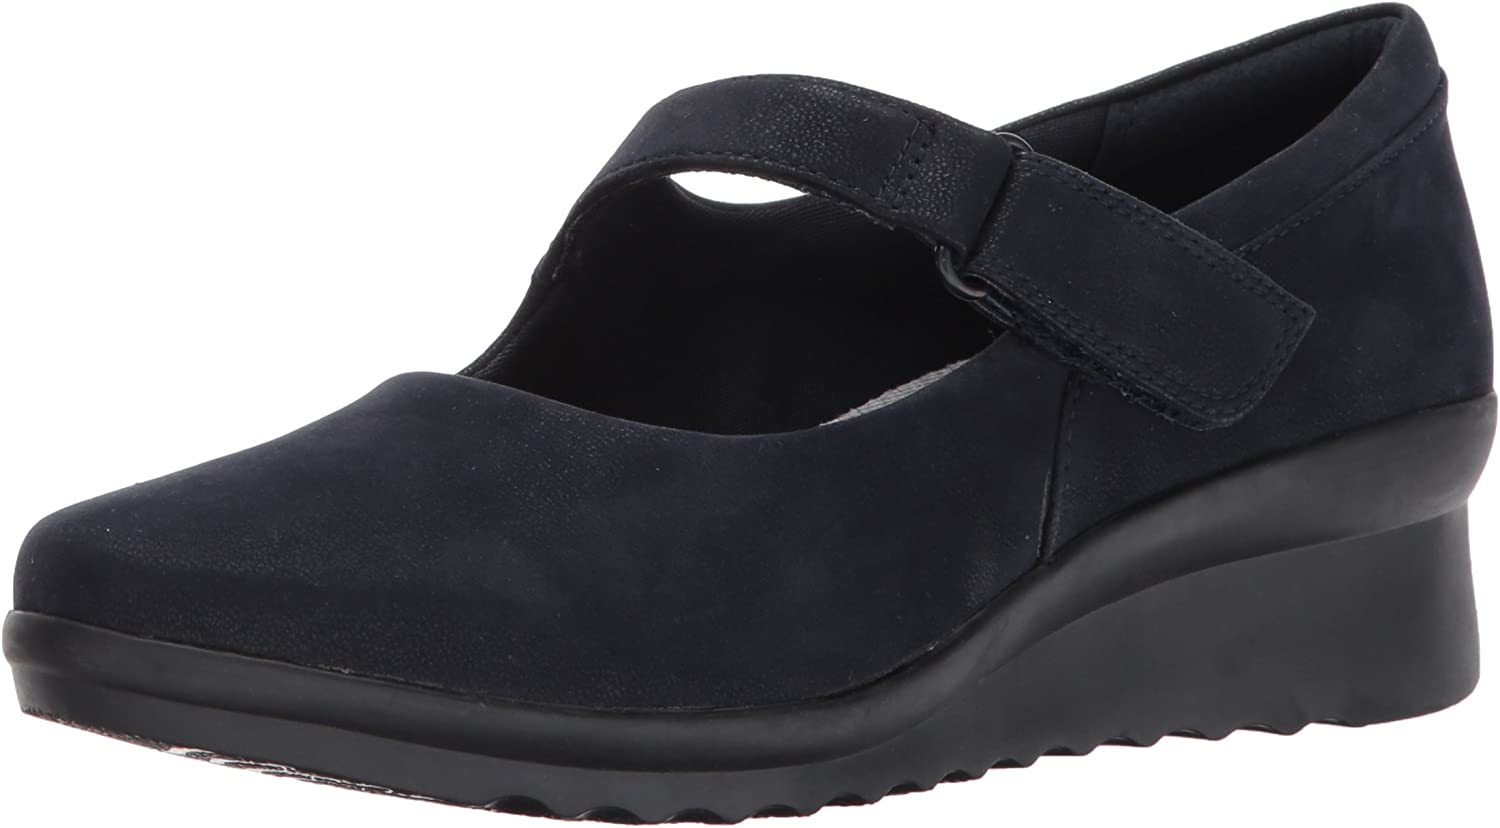 Clarks Womens Cloudstepper Caddell Yale Mary Jane Flats